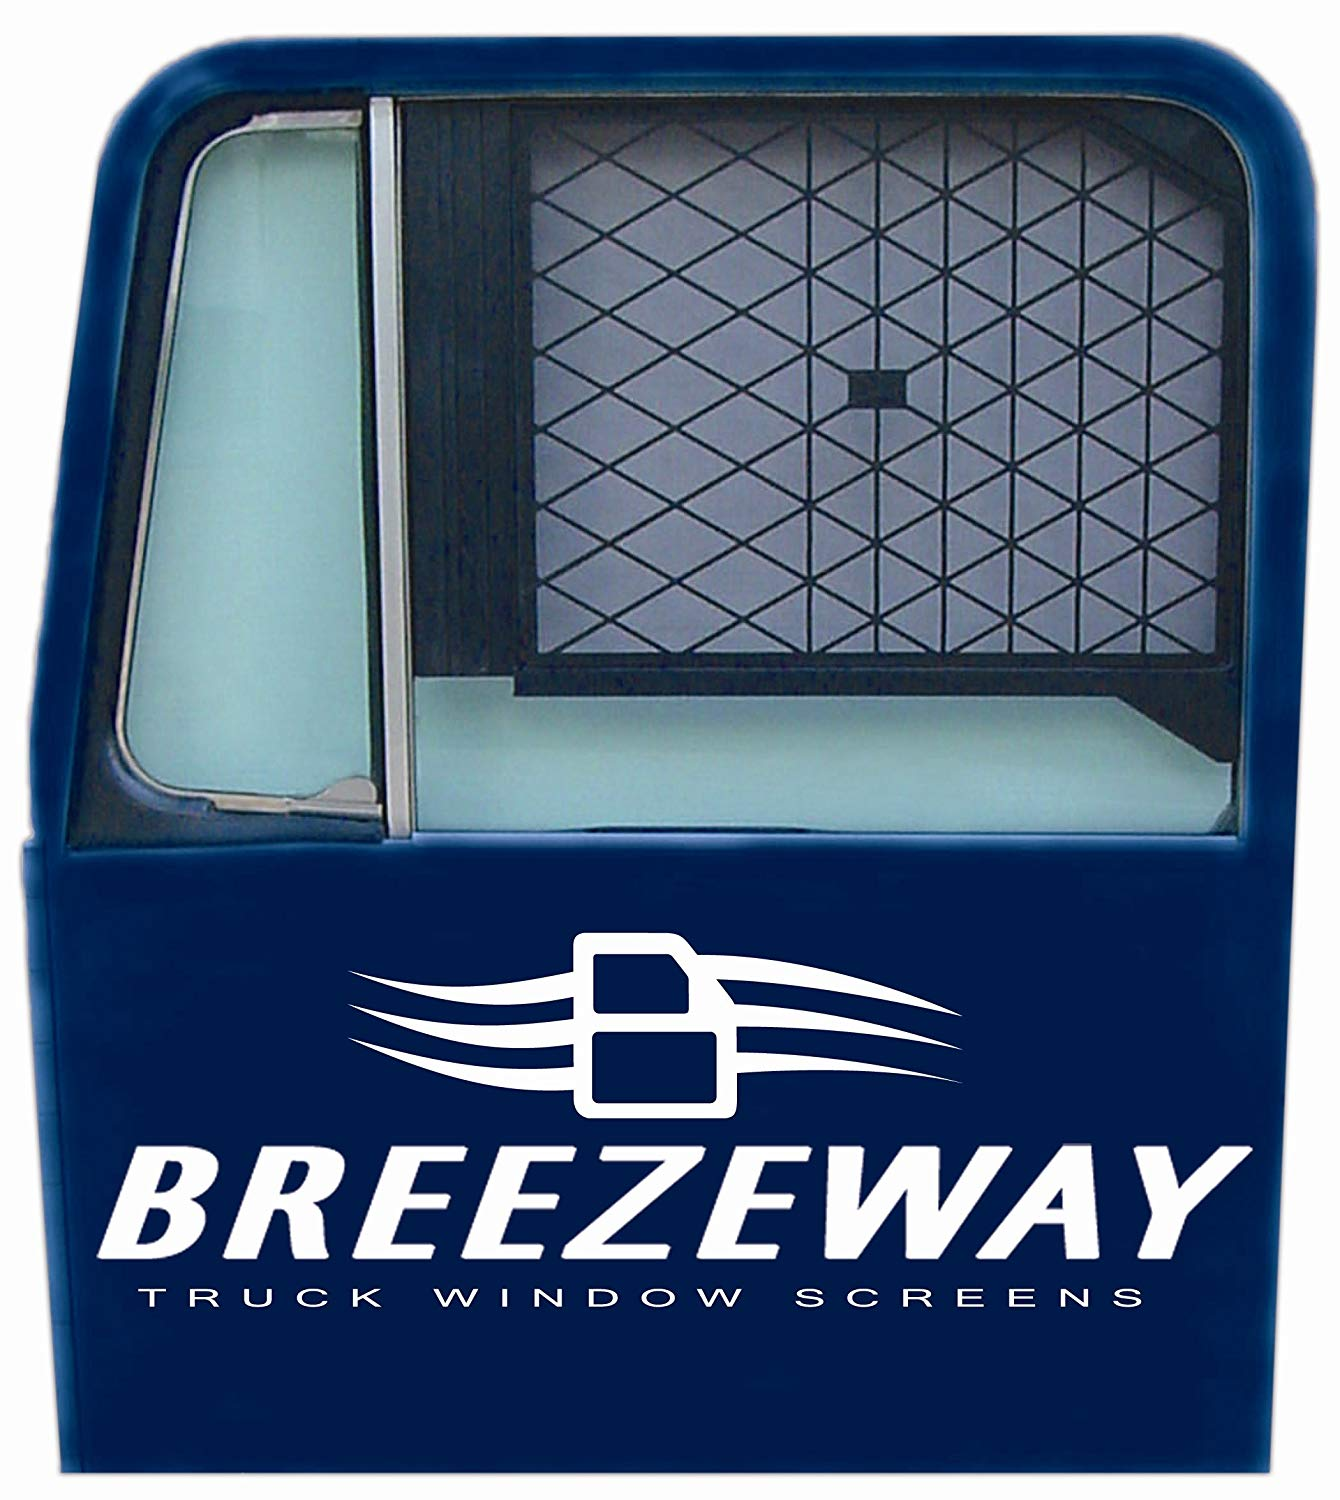 Breezeway Screens #1 Black Full Sized Truck Window Screen